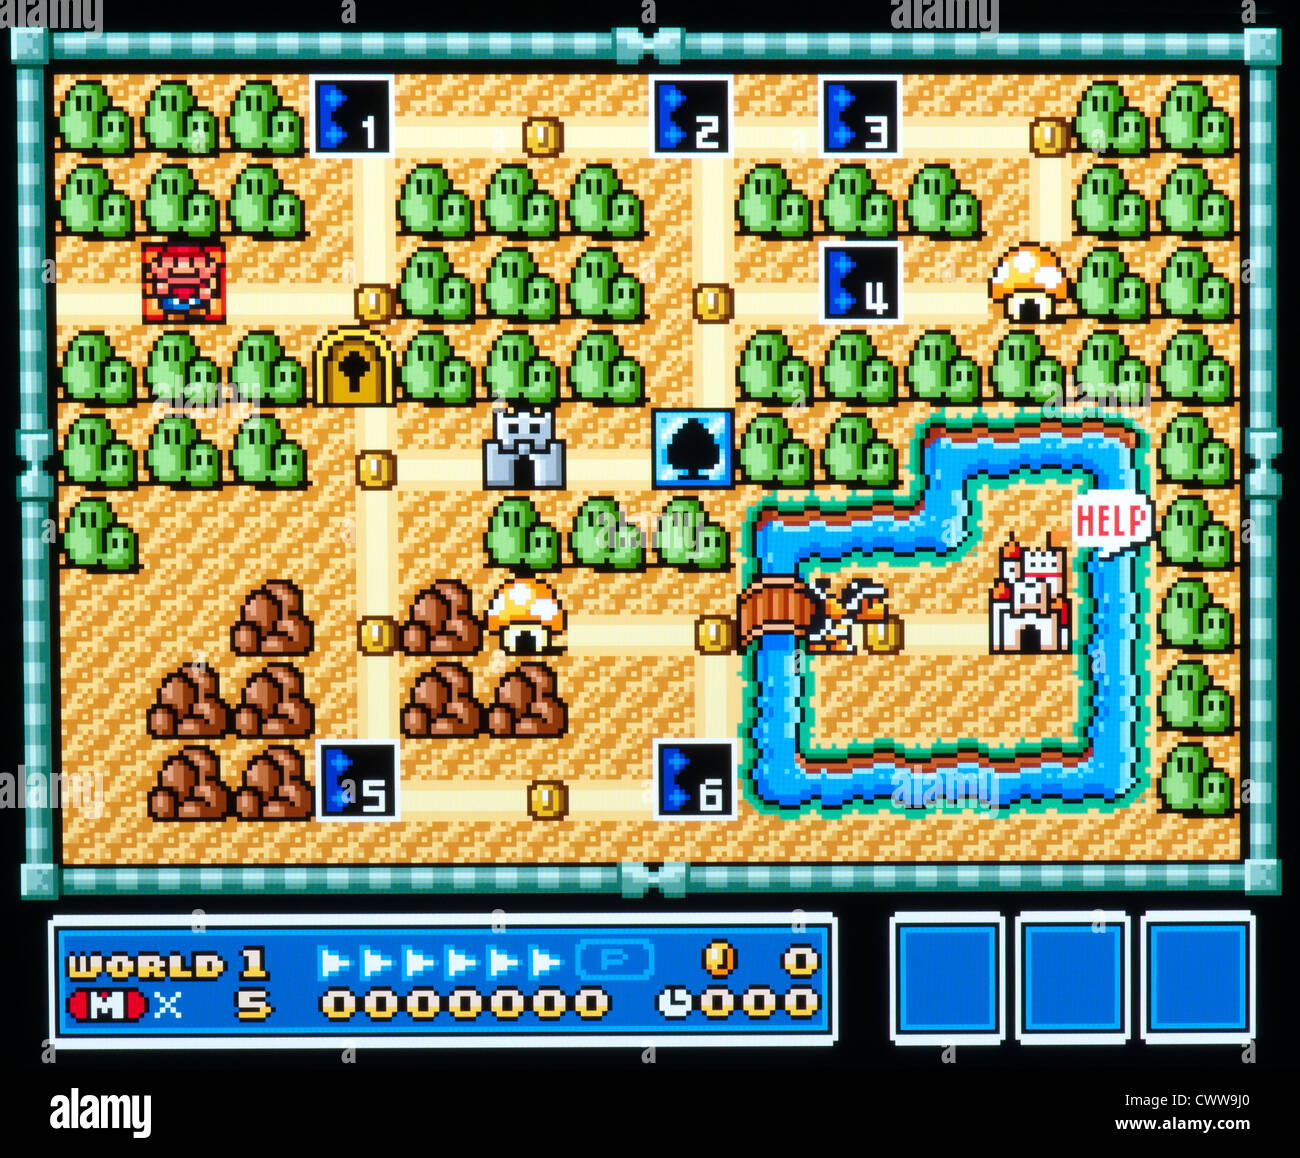 Super mario bros video game world 1 level map interface stock super mario bros video game world 1 level map interface gumiabroncs Image collections